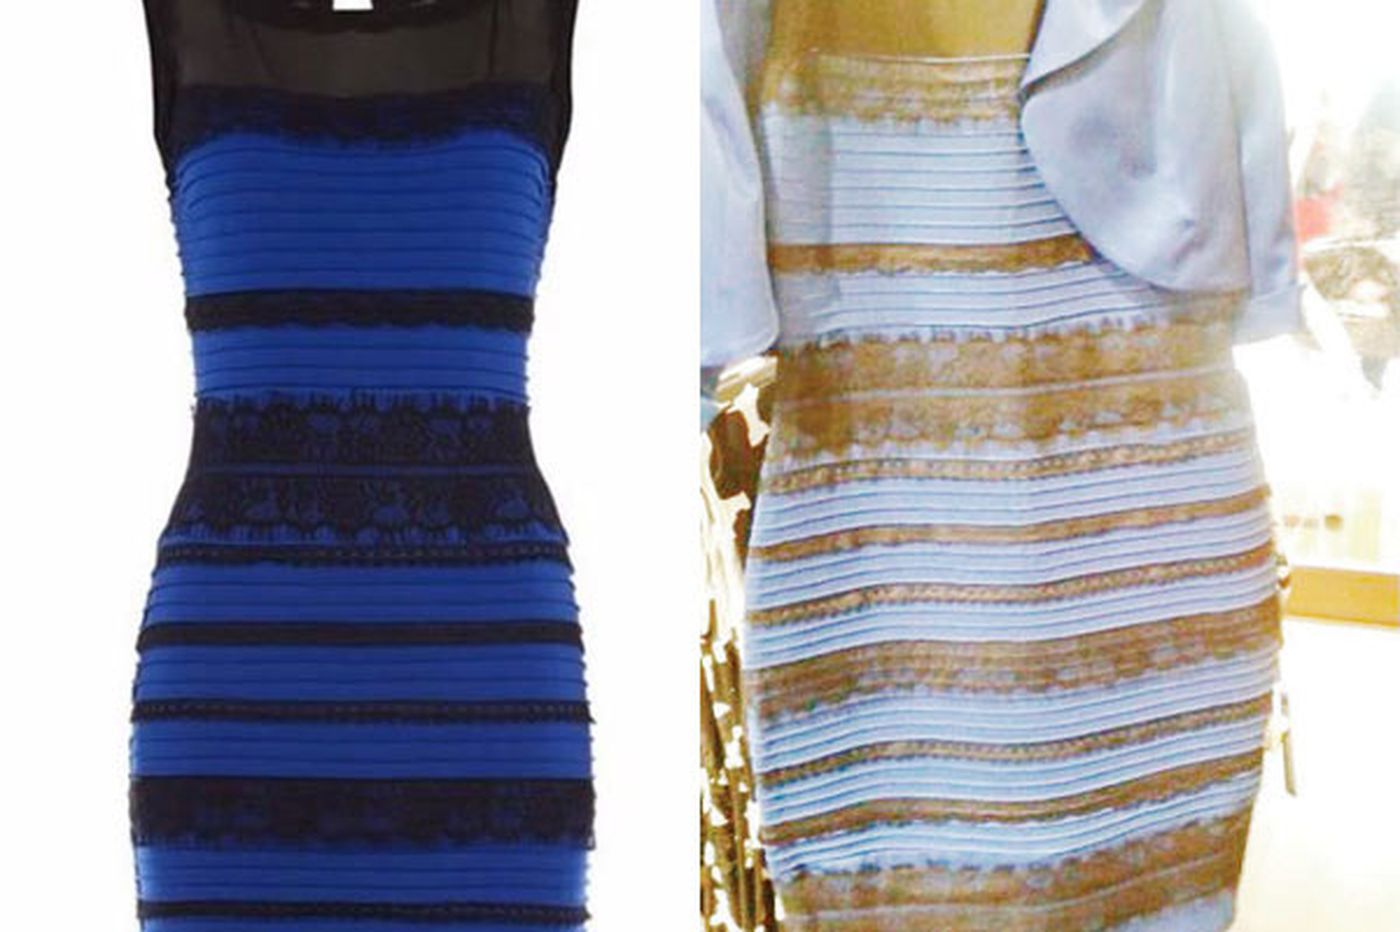 Why the dress is blue (but white to you)